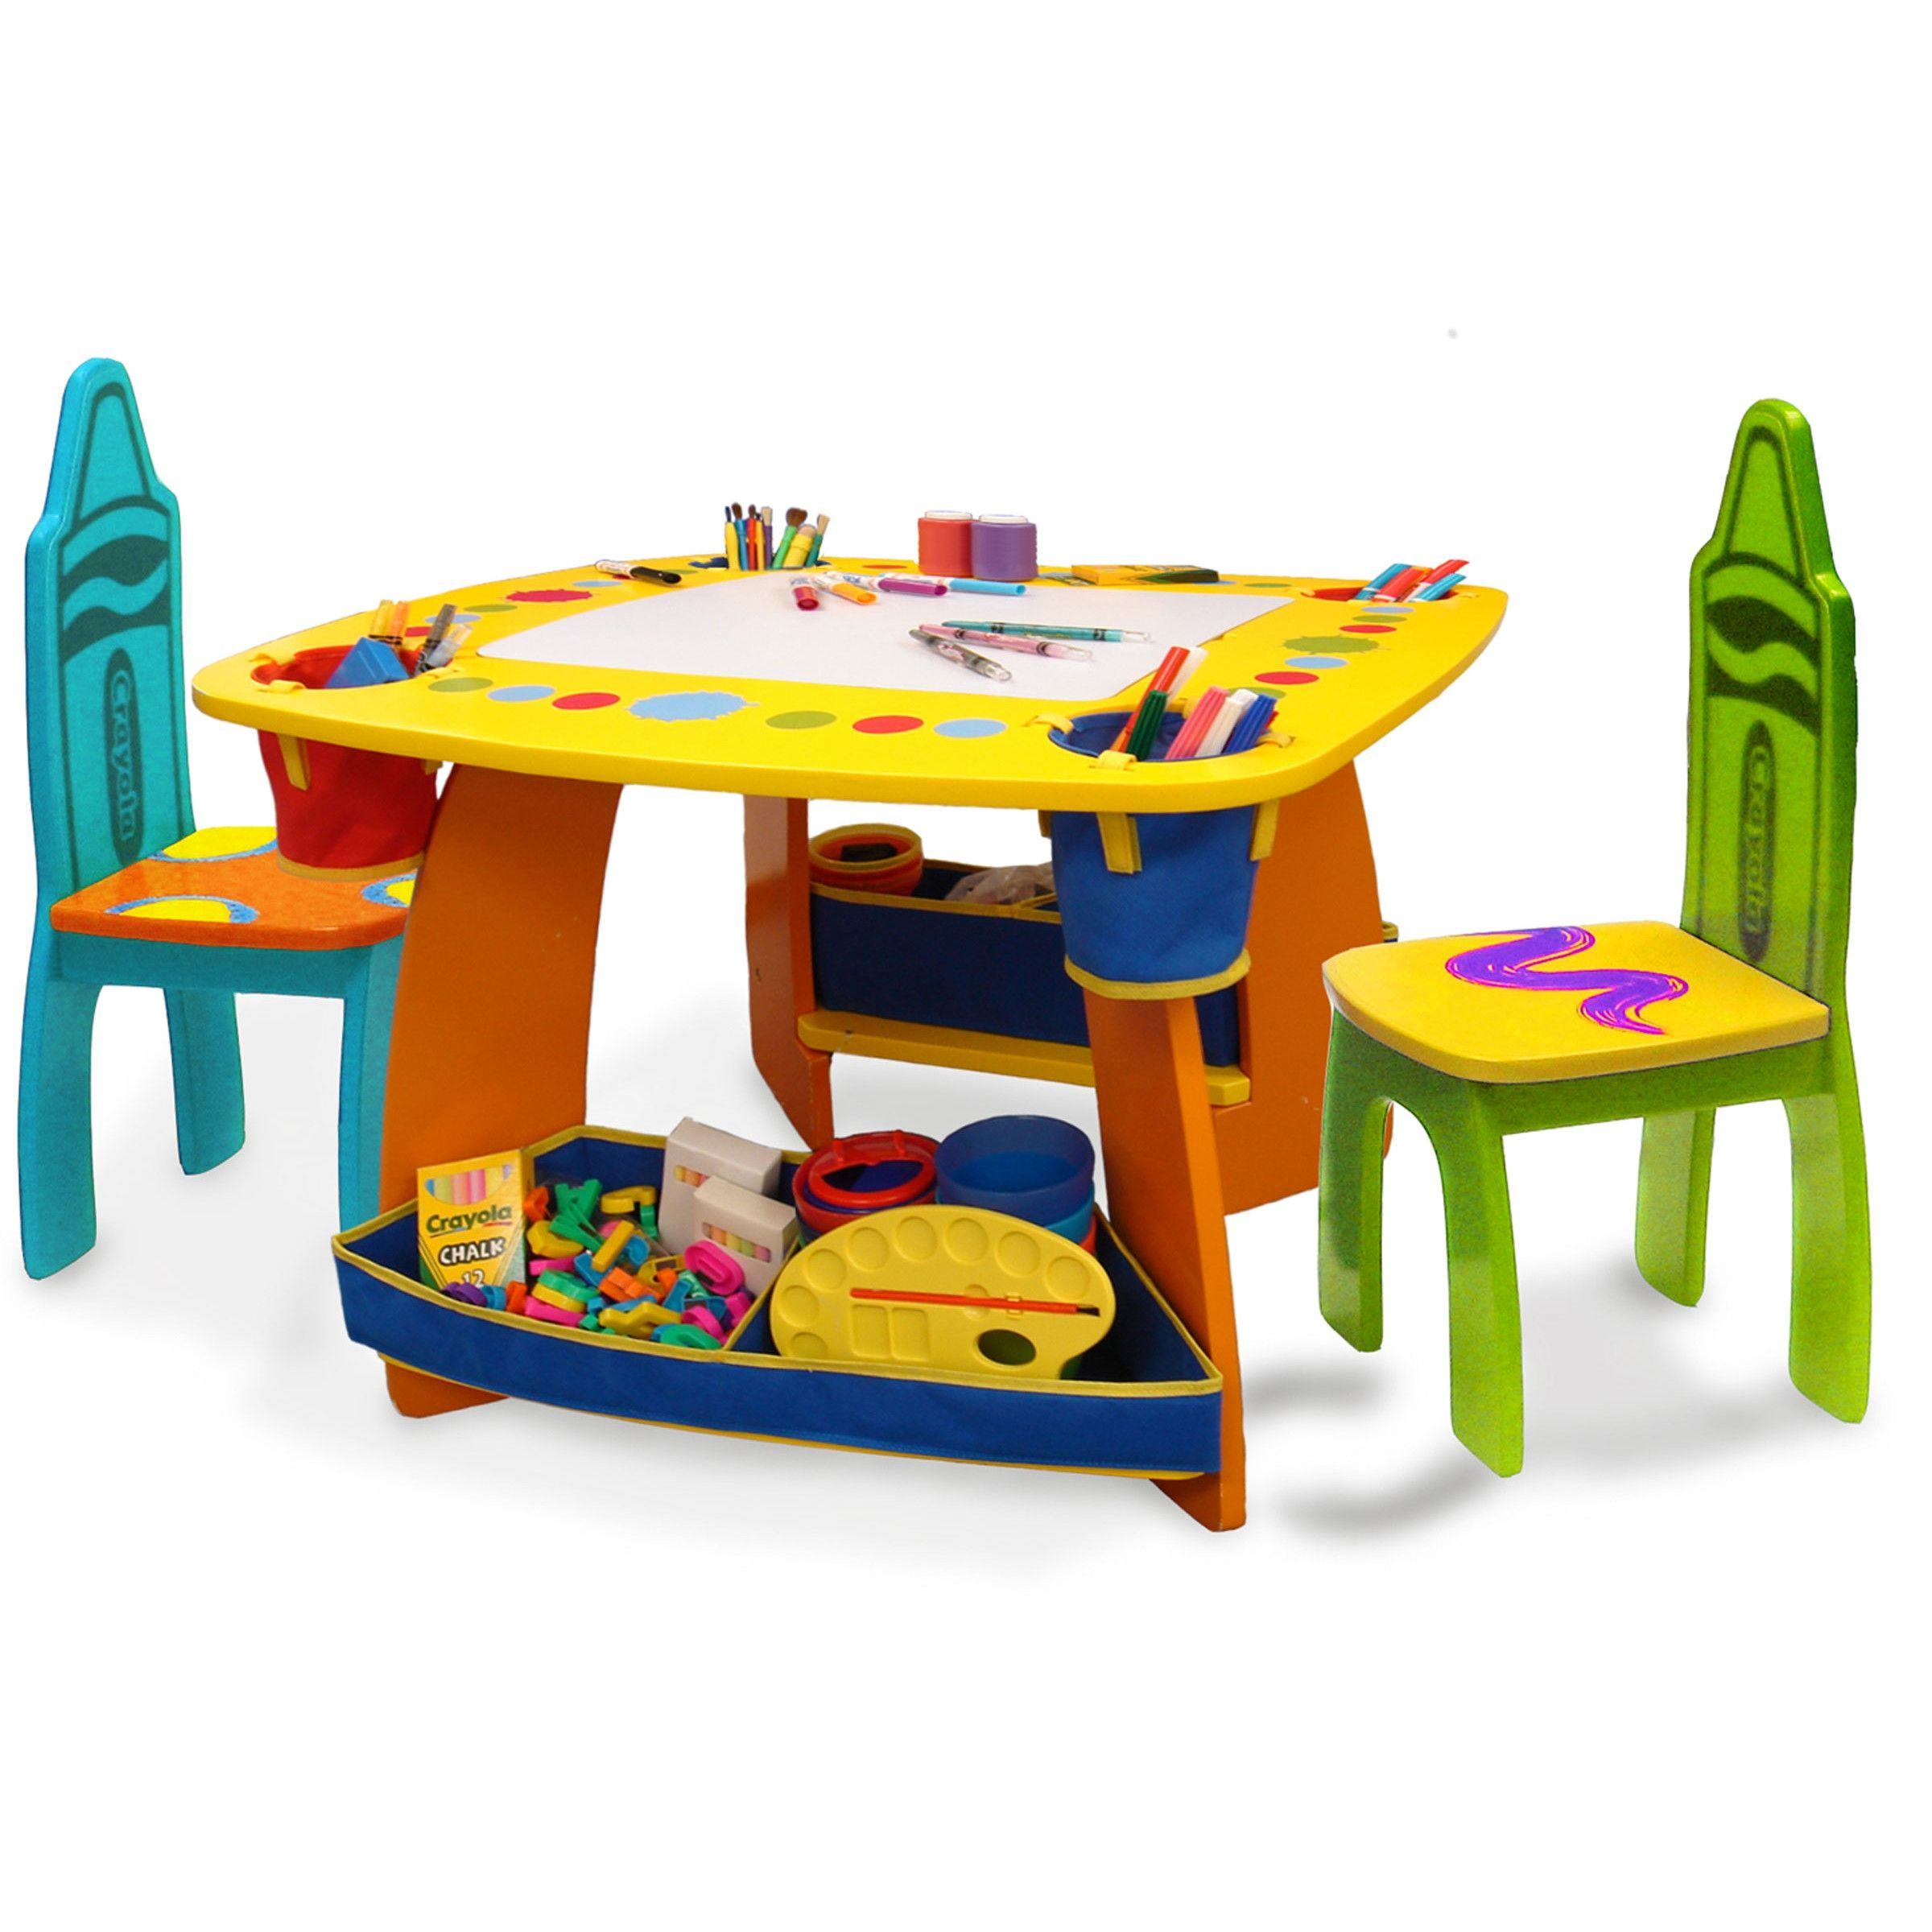 Crayola Wooden Kids 3 Piece Table and Chair Set | Playrooms ...